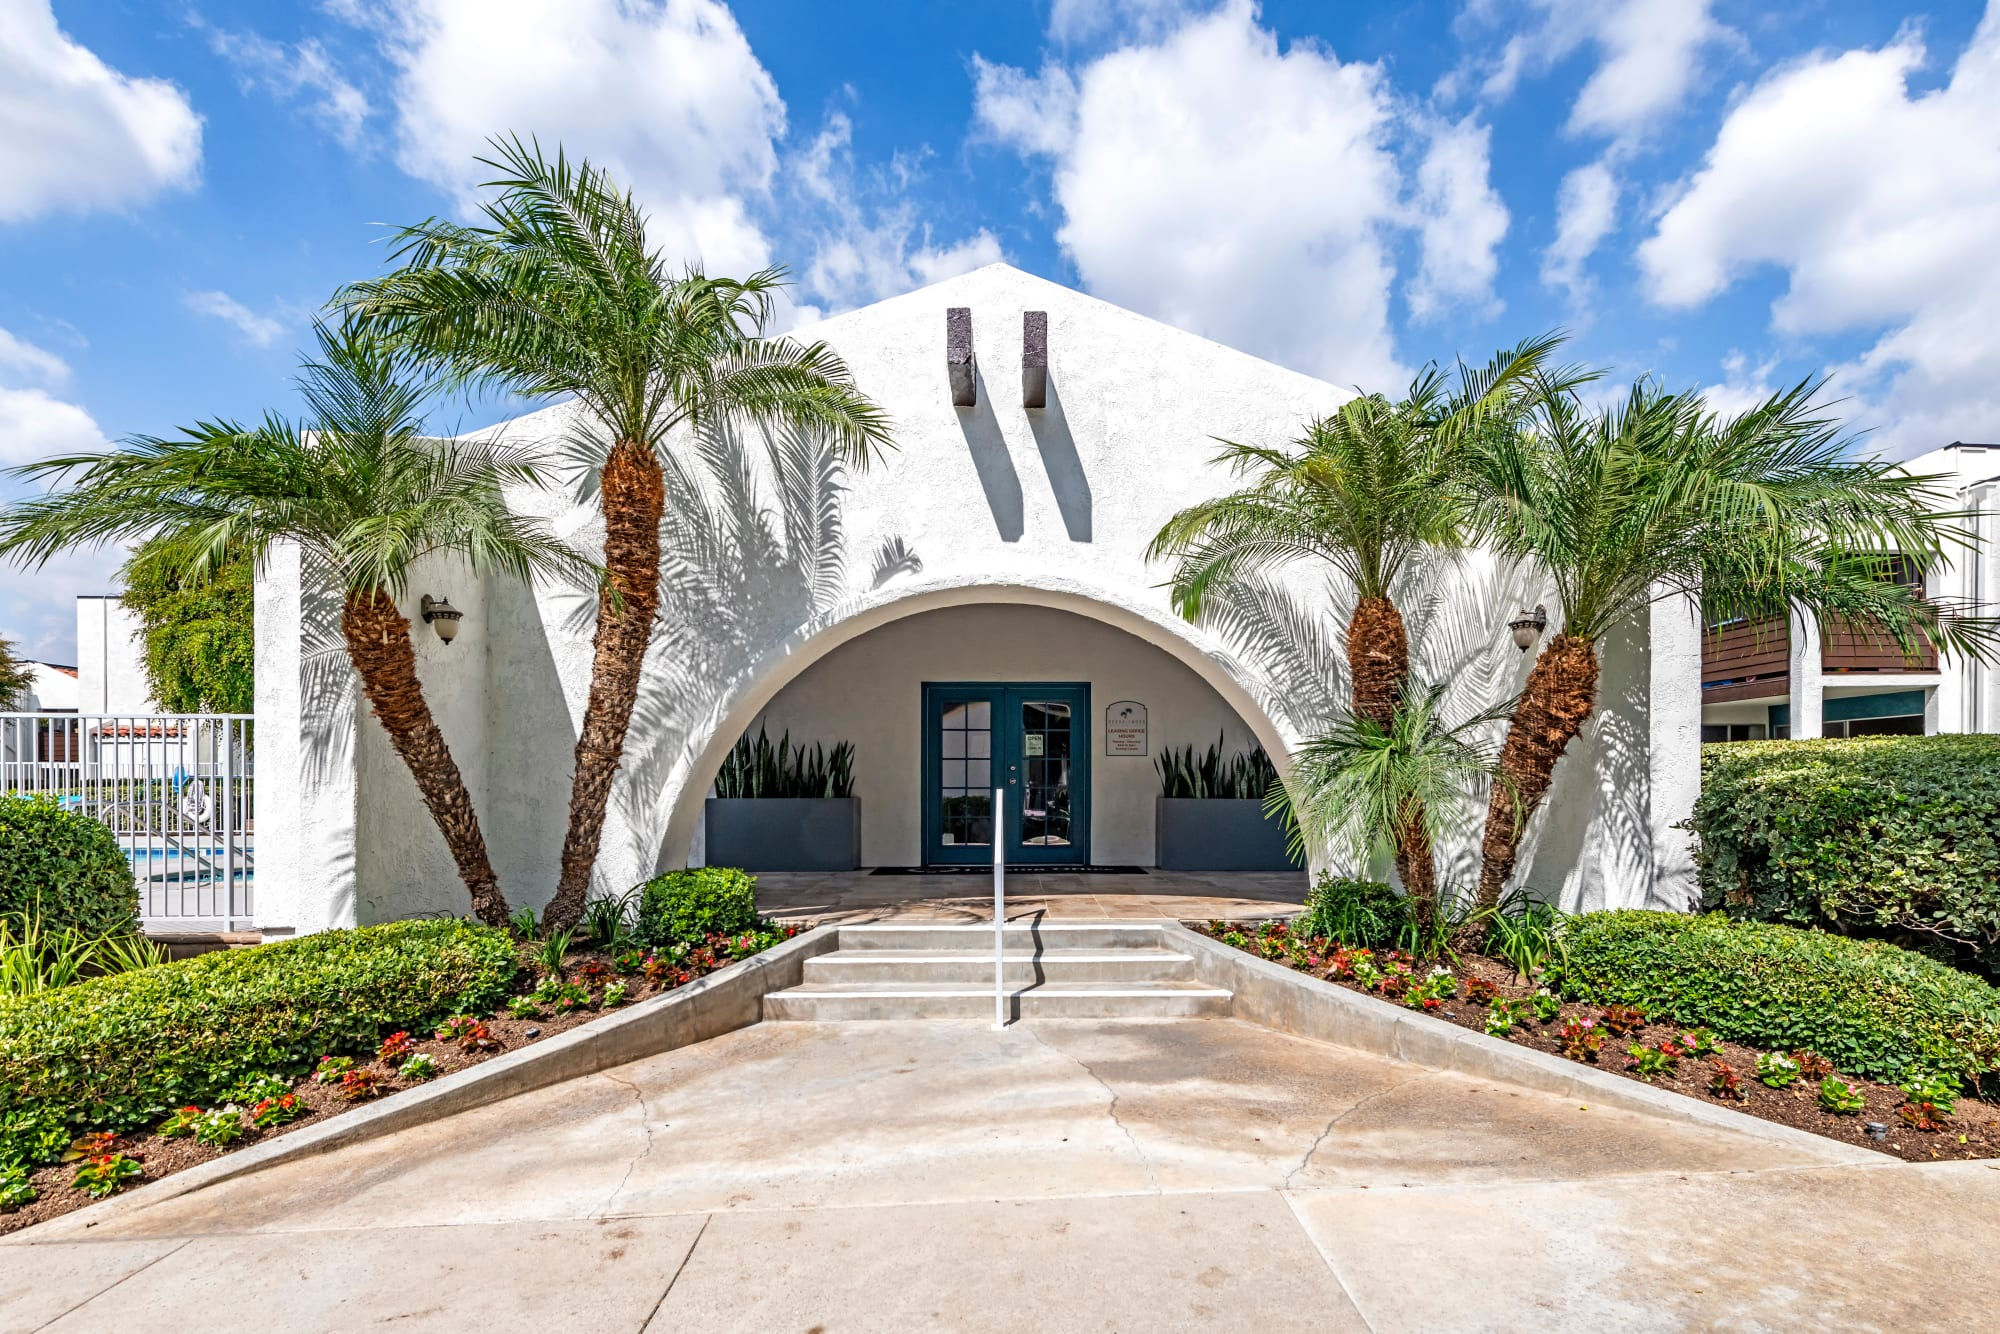 The leasing office entryway surrounded by lush palm trees at Kendallwood Apartments in Whittier, California